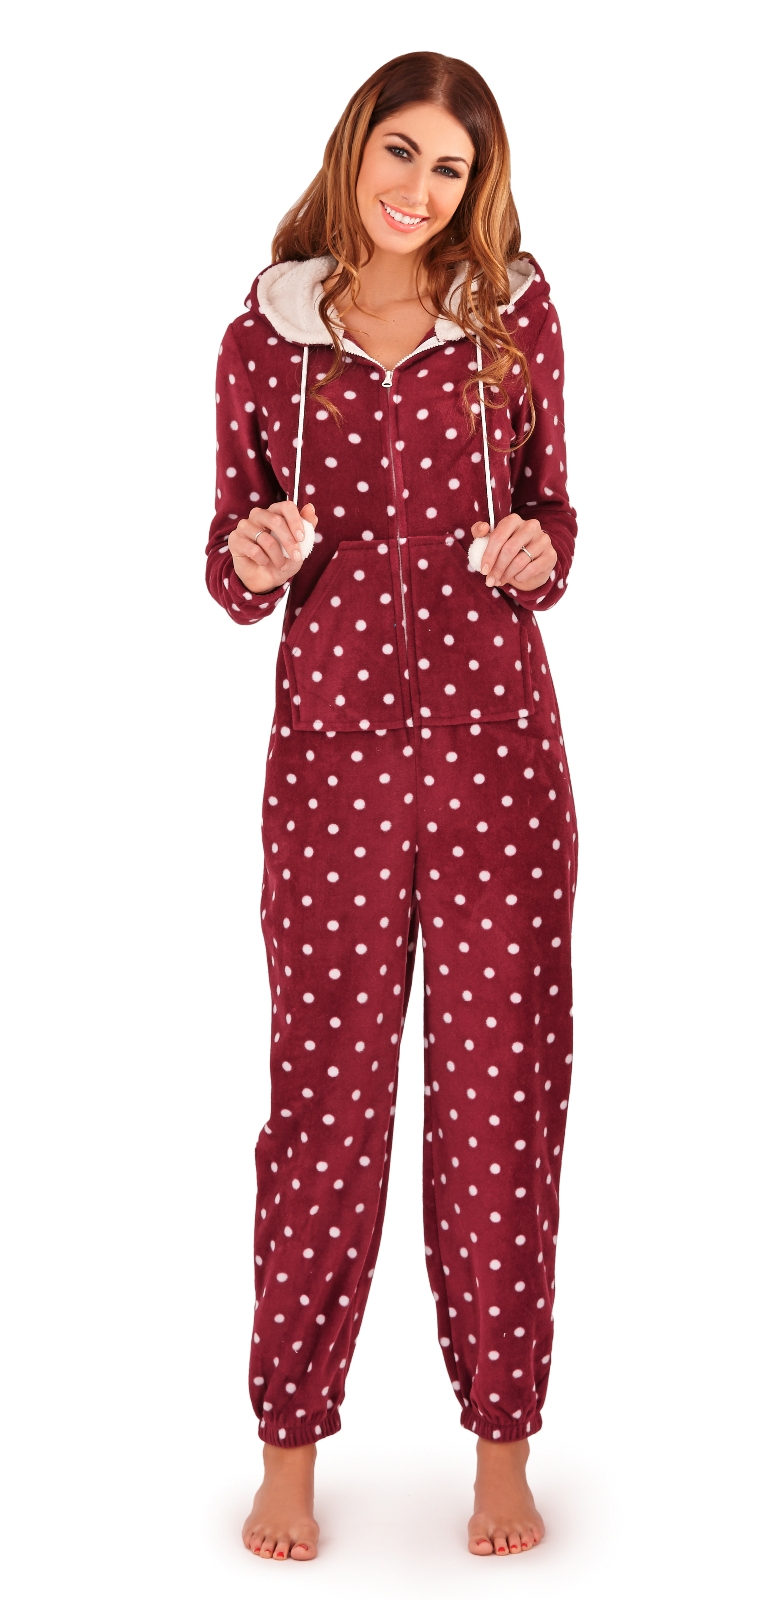 Plus Size Pyjamas| Women's Nightwear| Fashion Catalogue | Fashion World9pm for Next Day Del · Sizes  · Spread The Cost · Click & Collect.